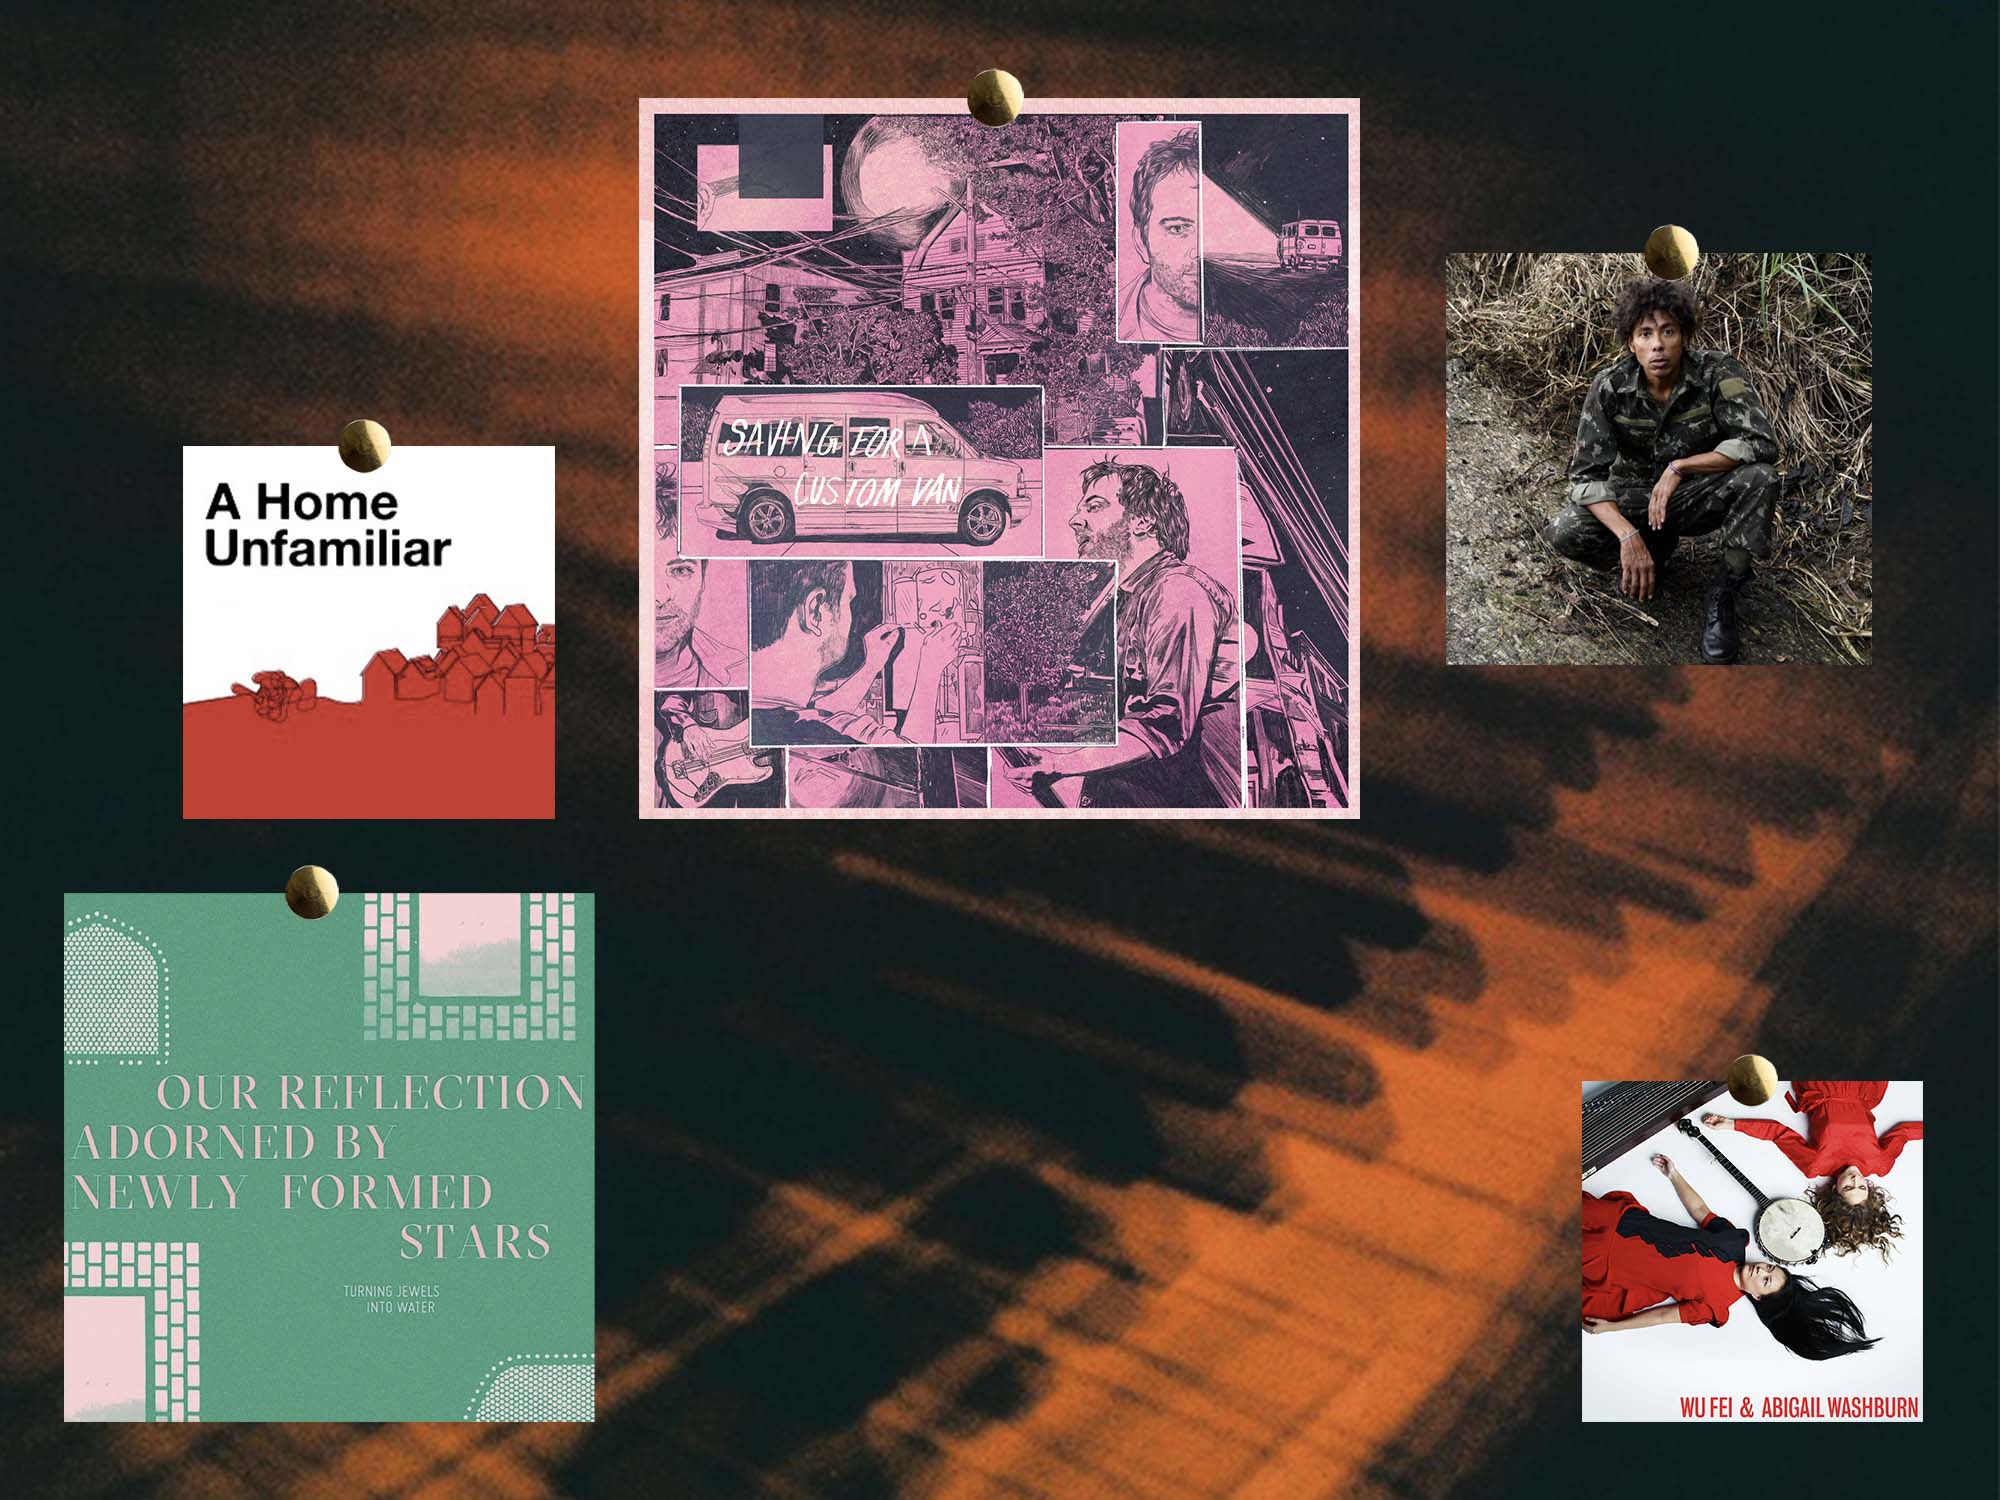 Sounds of solidarity: 5 albums blending language, technologies, and traditions